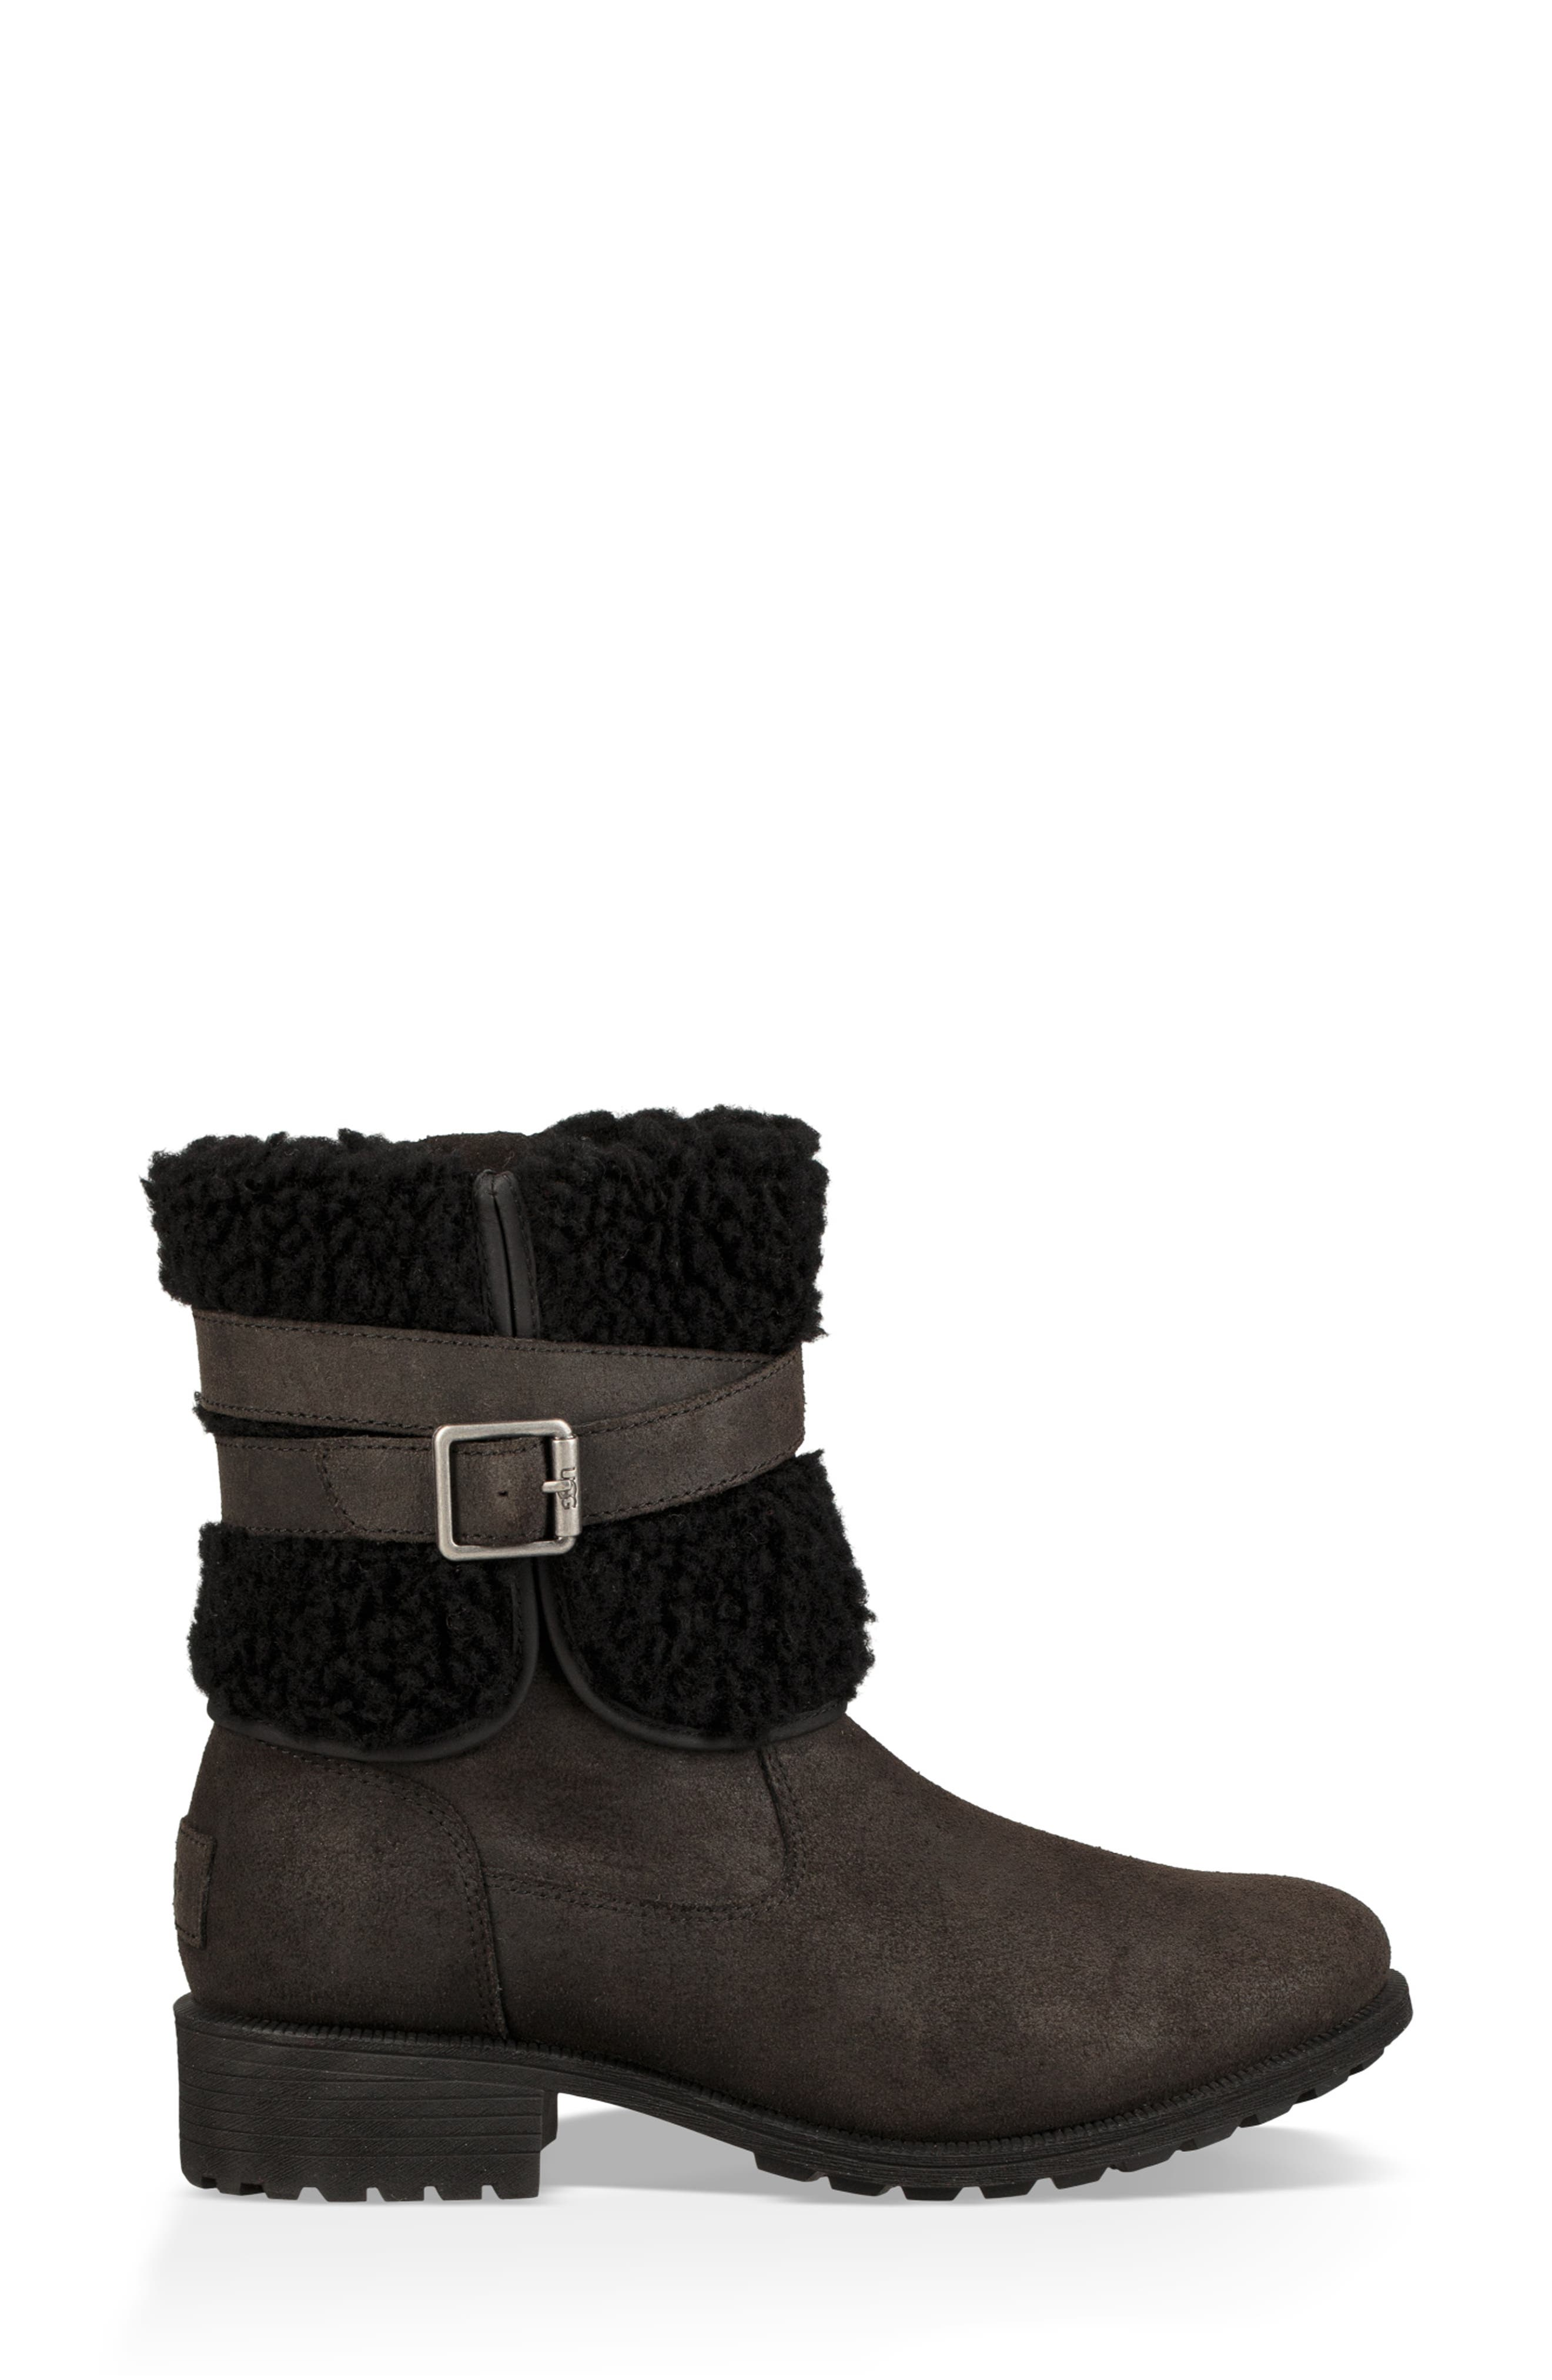 Blayre III Faux Shearling Cuff Bootie,                             Alternate thumbnail 3, color,                             BLACK